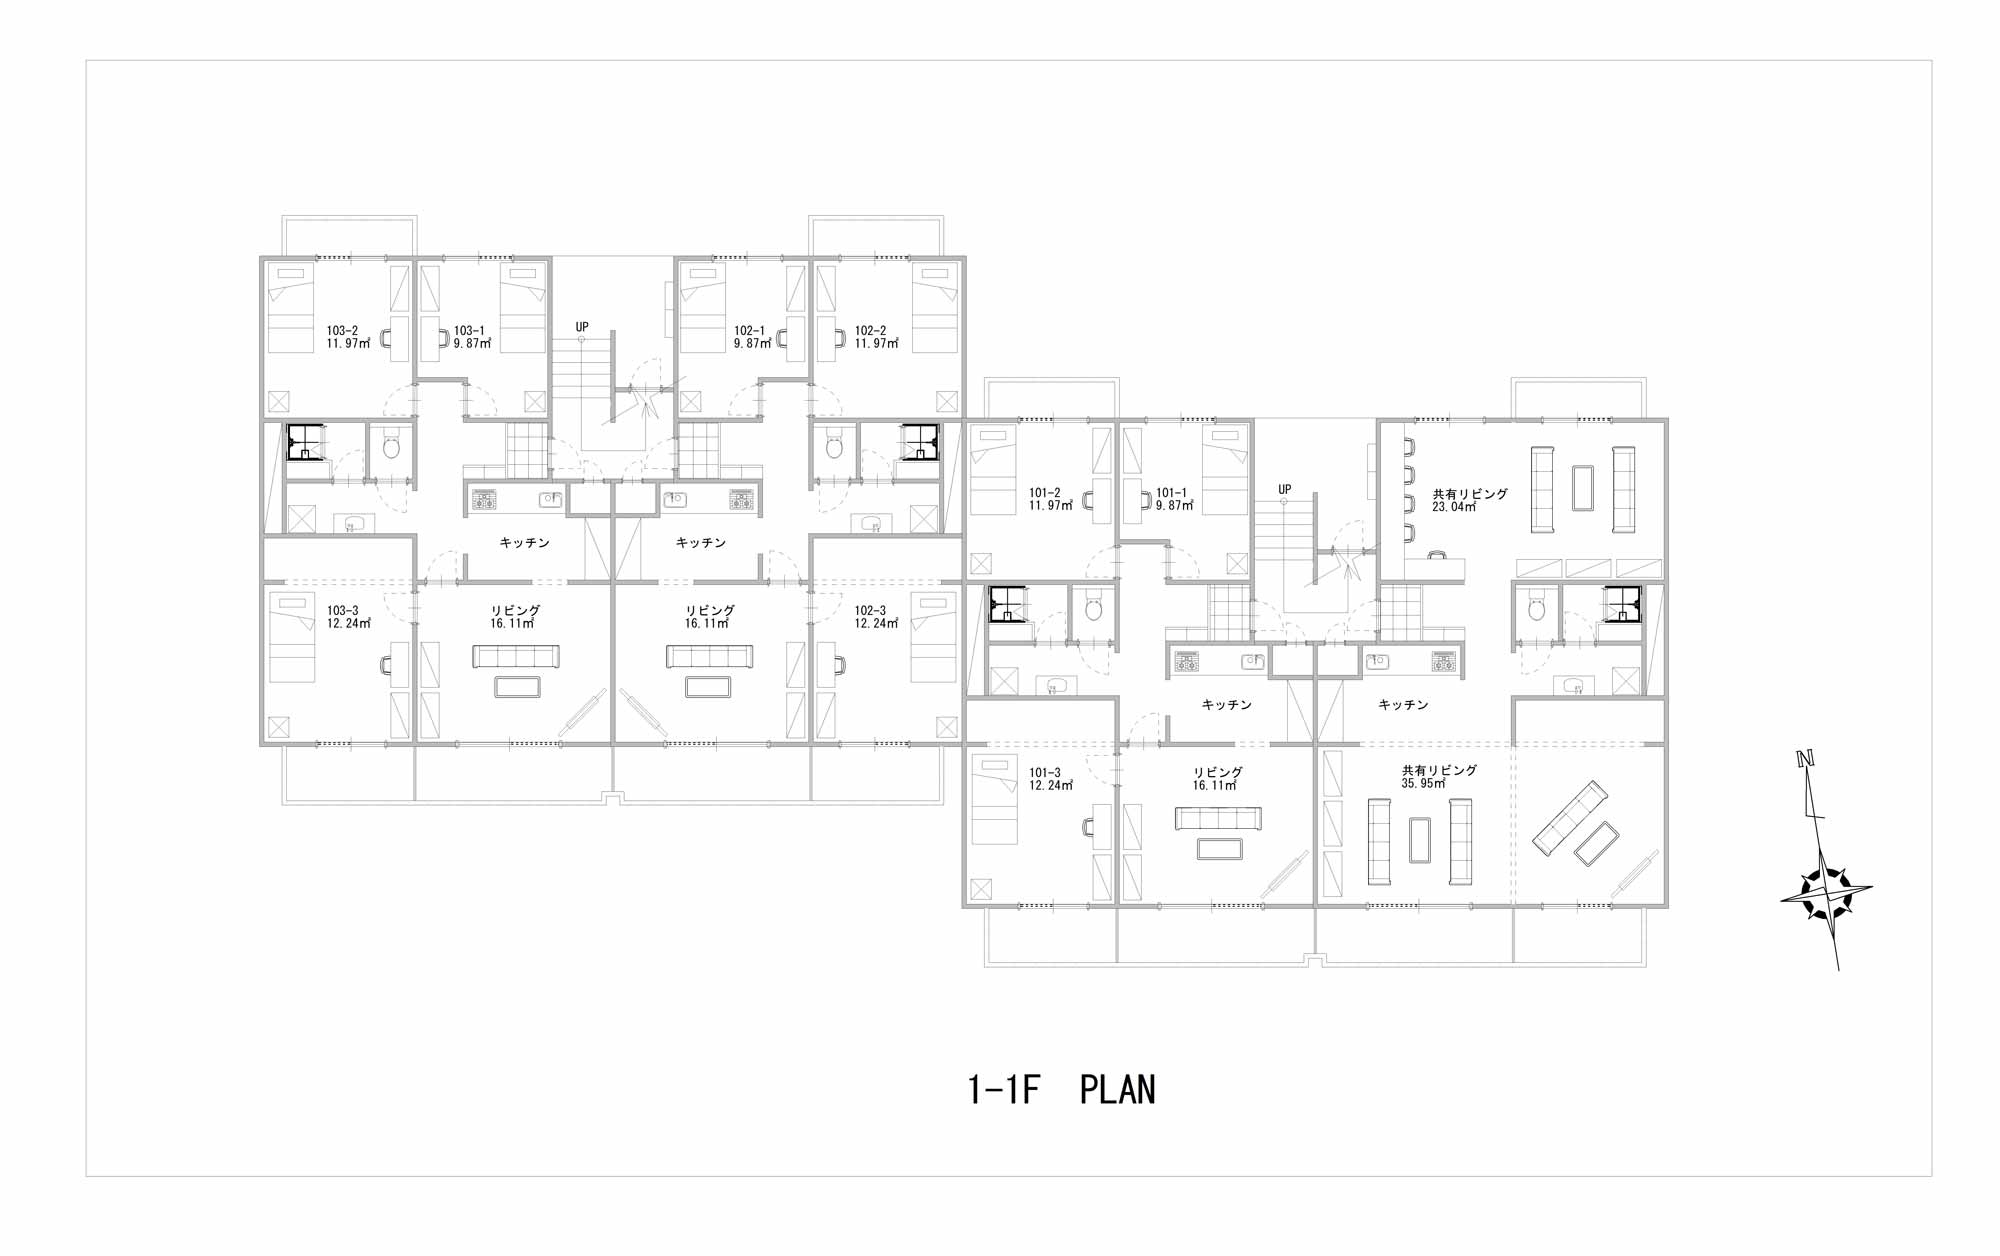 guesthouse sharehouse ガーデンタウン戸塚 floorplan1